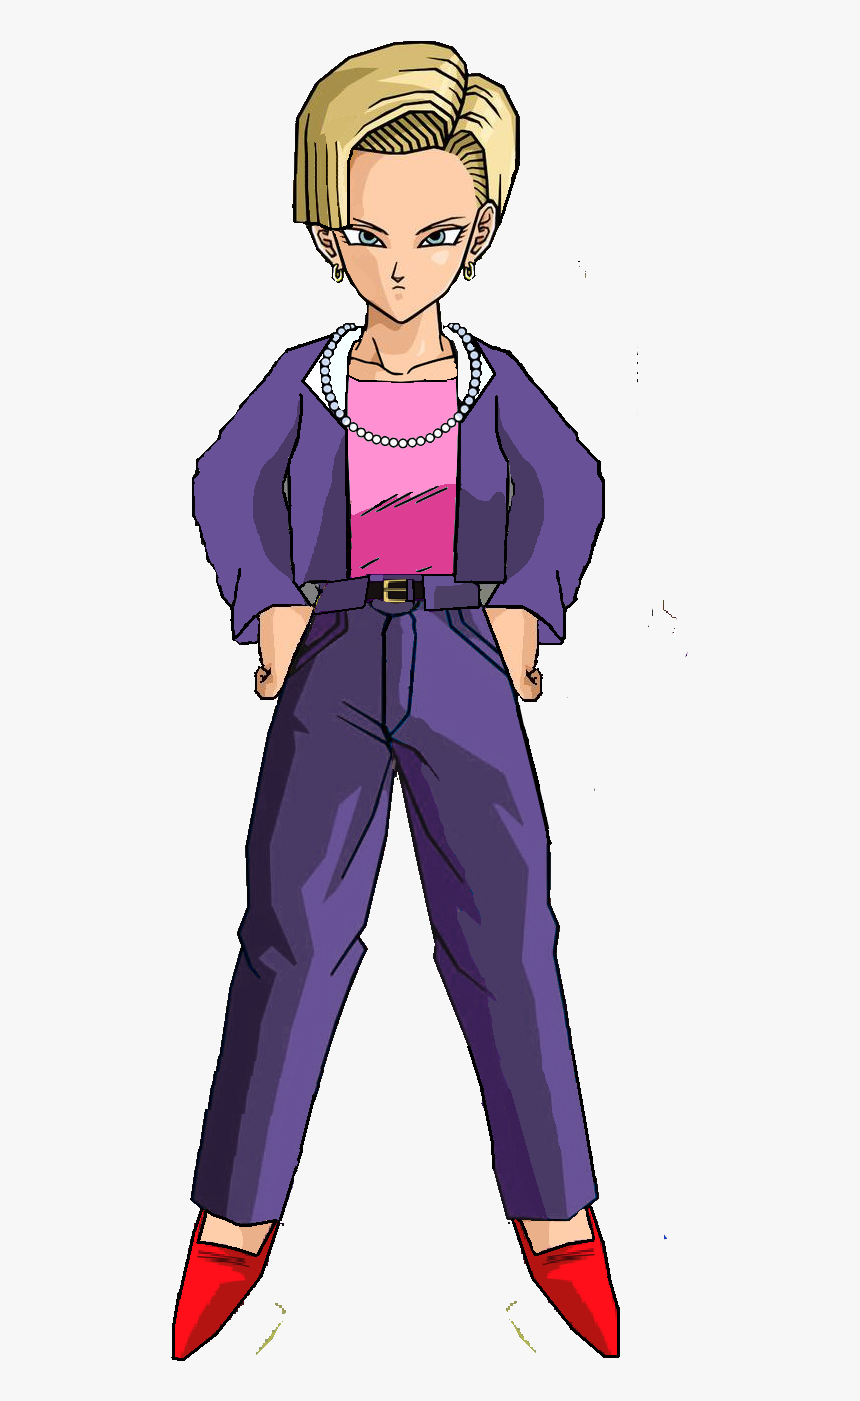 Android 18 Gt - Dragon Ball Gt Androide 18, HD Png Download, Free Download